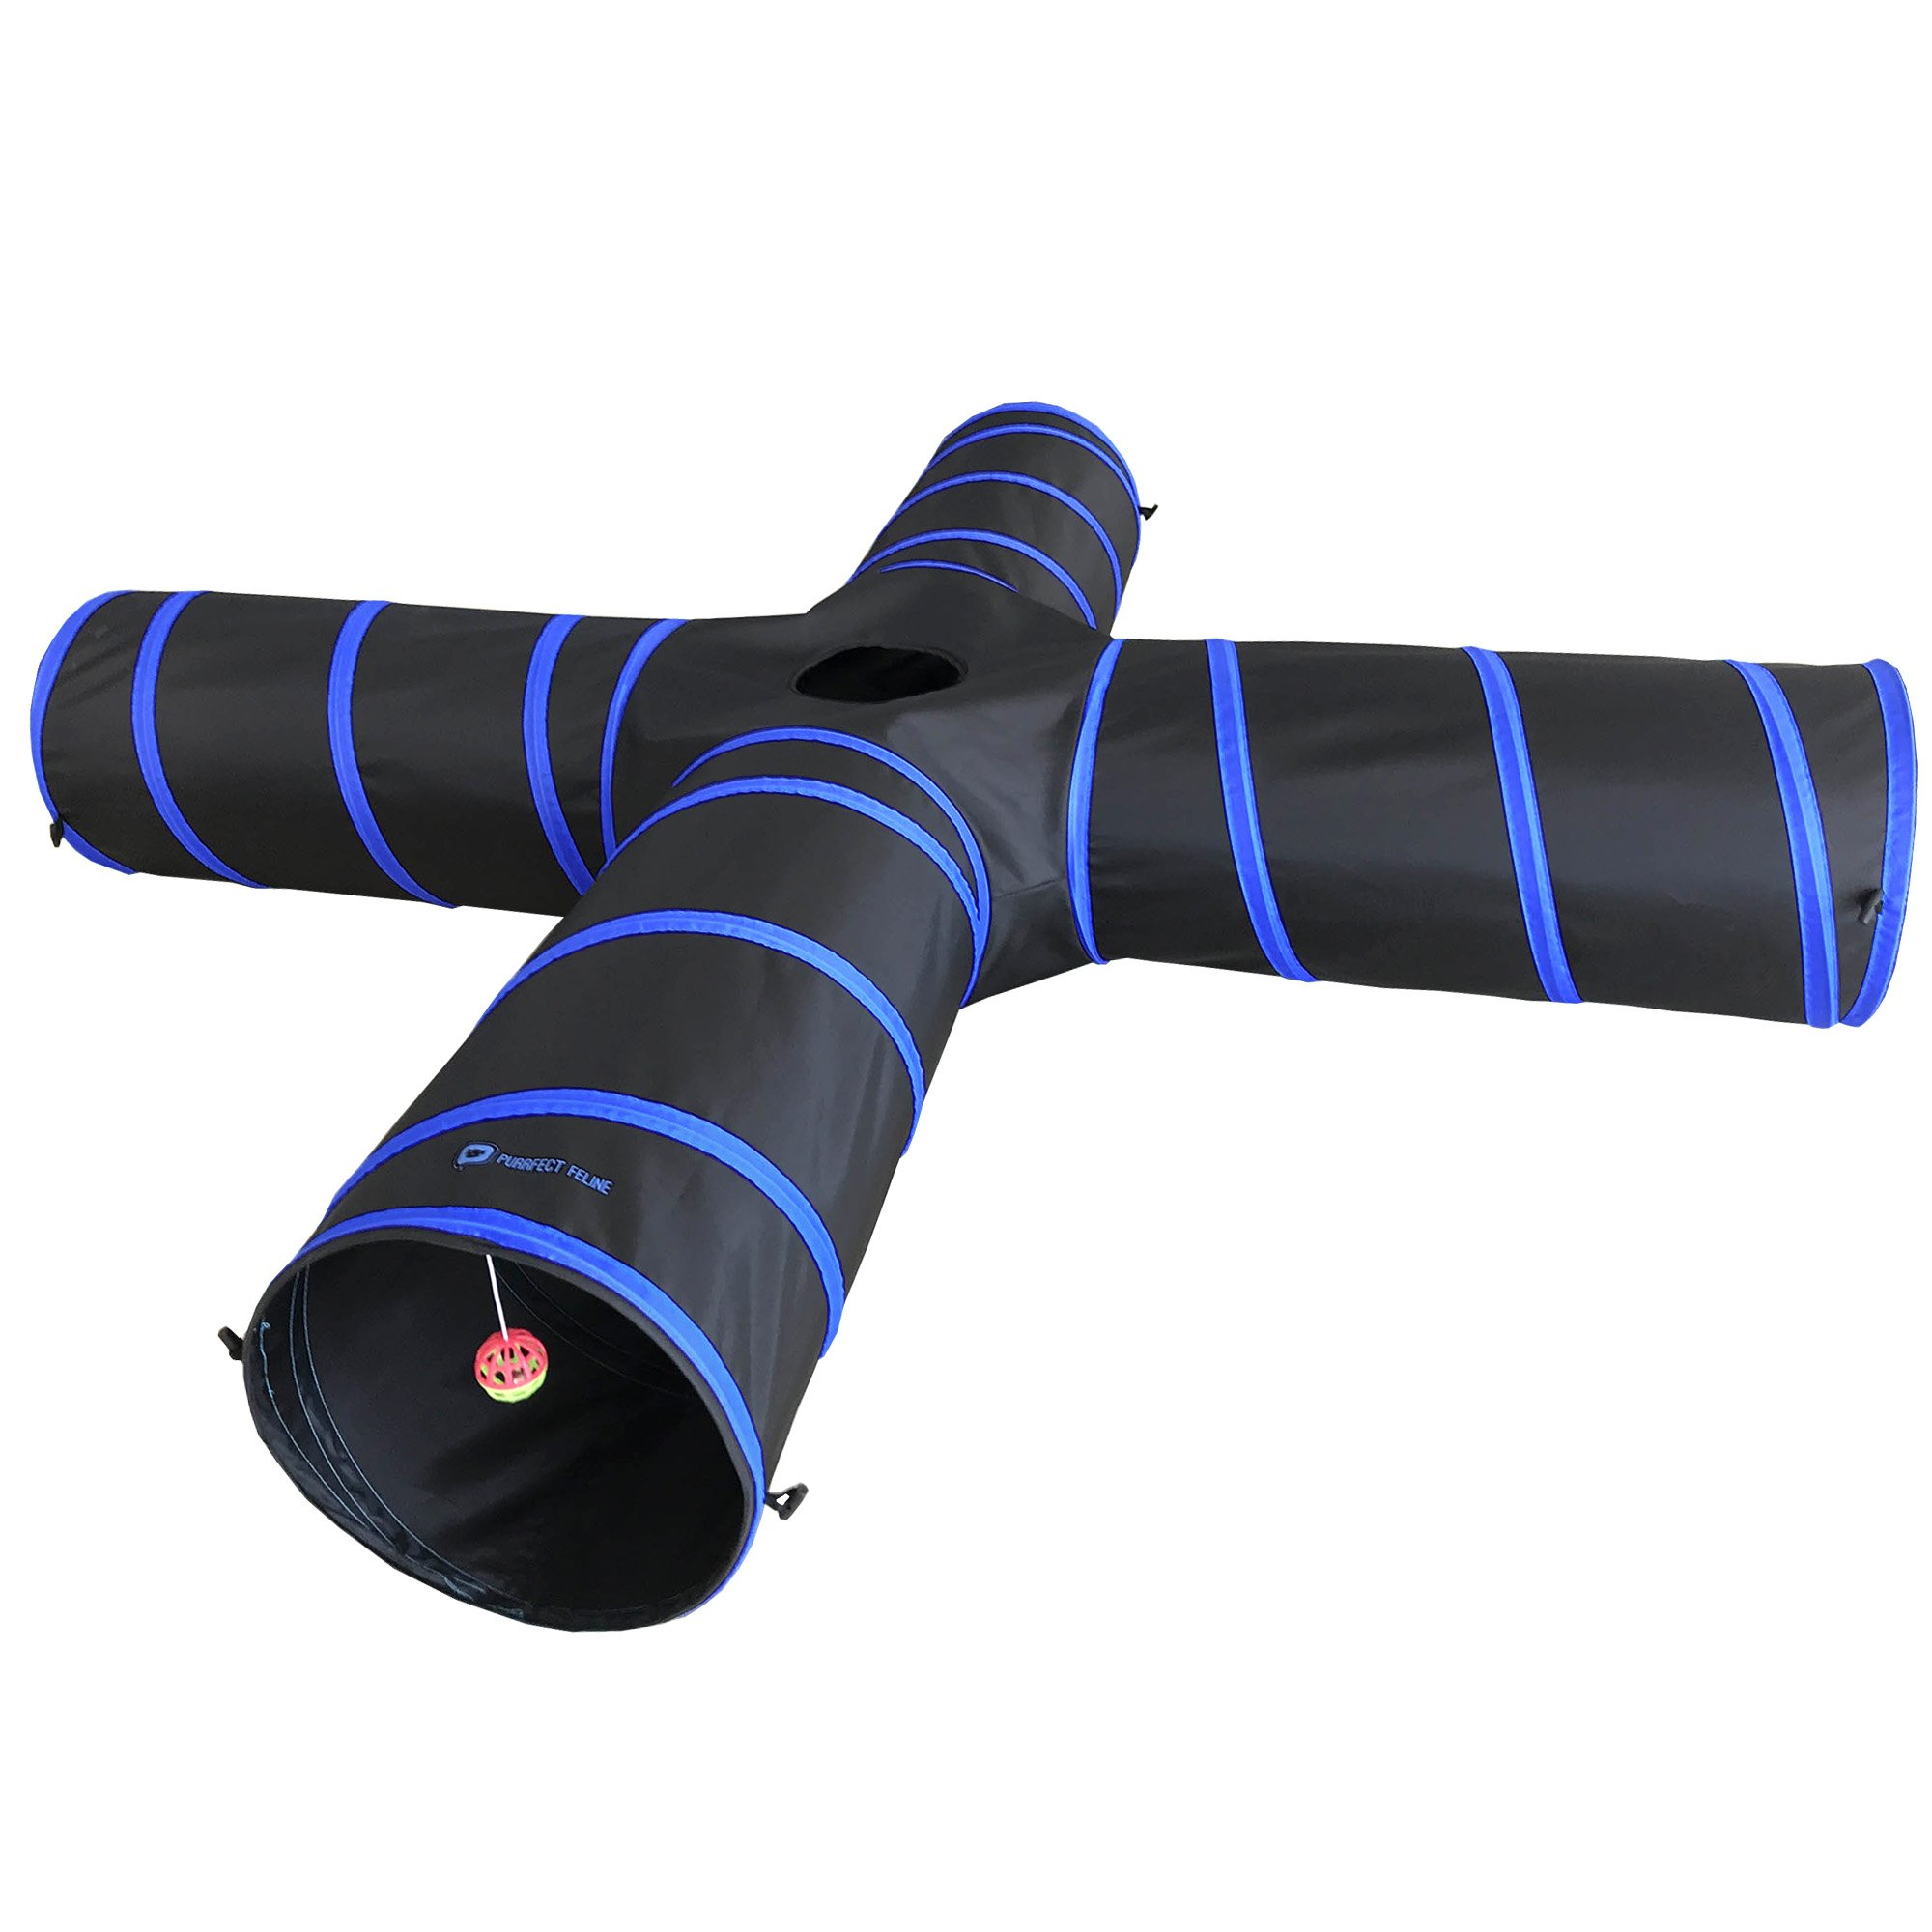 Purrfect Feline New Cat tunnel Design, Collapsible 4-way Cat Tunnel Toy with Crinkle (Medium, Dark Blue)